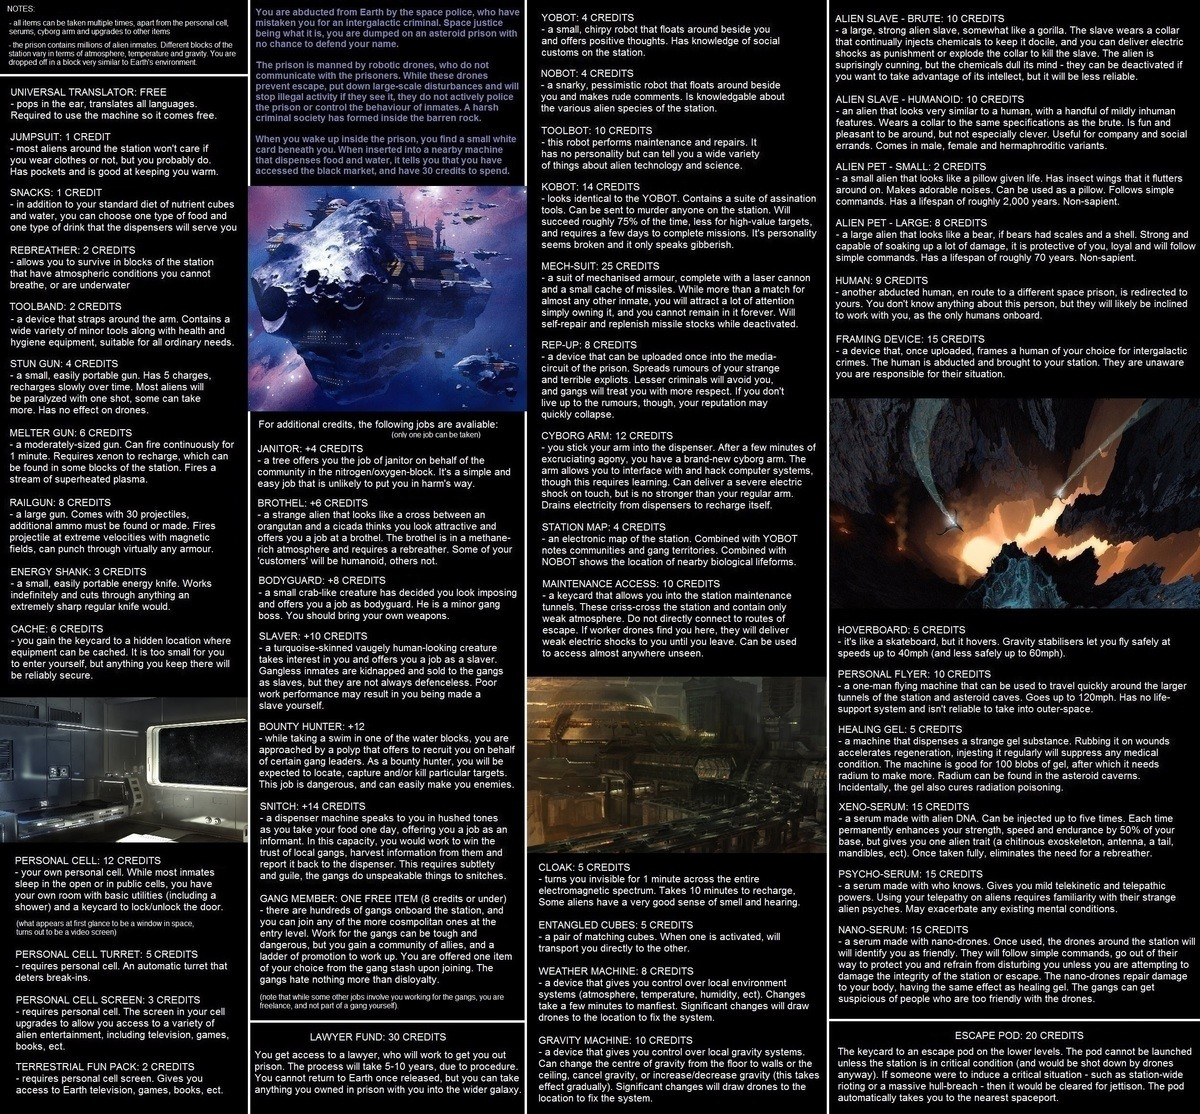 Space Prison CYOA. .. (Extra Job) Janitor - What can I say, I don't like mess. Jumpsuit (Cause I care about exposure), Snacks. Rebreather (Most likely needed) Small Alien pet, Person